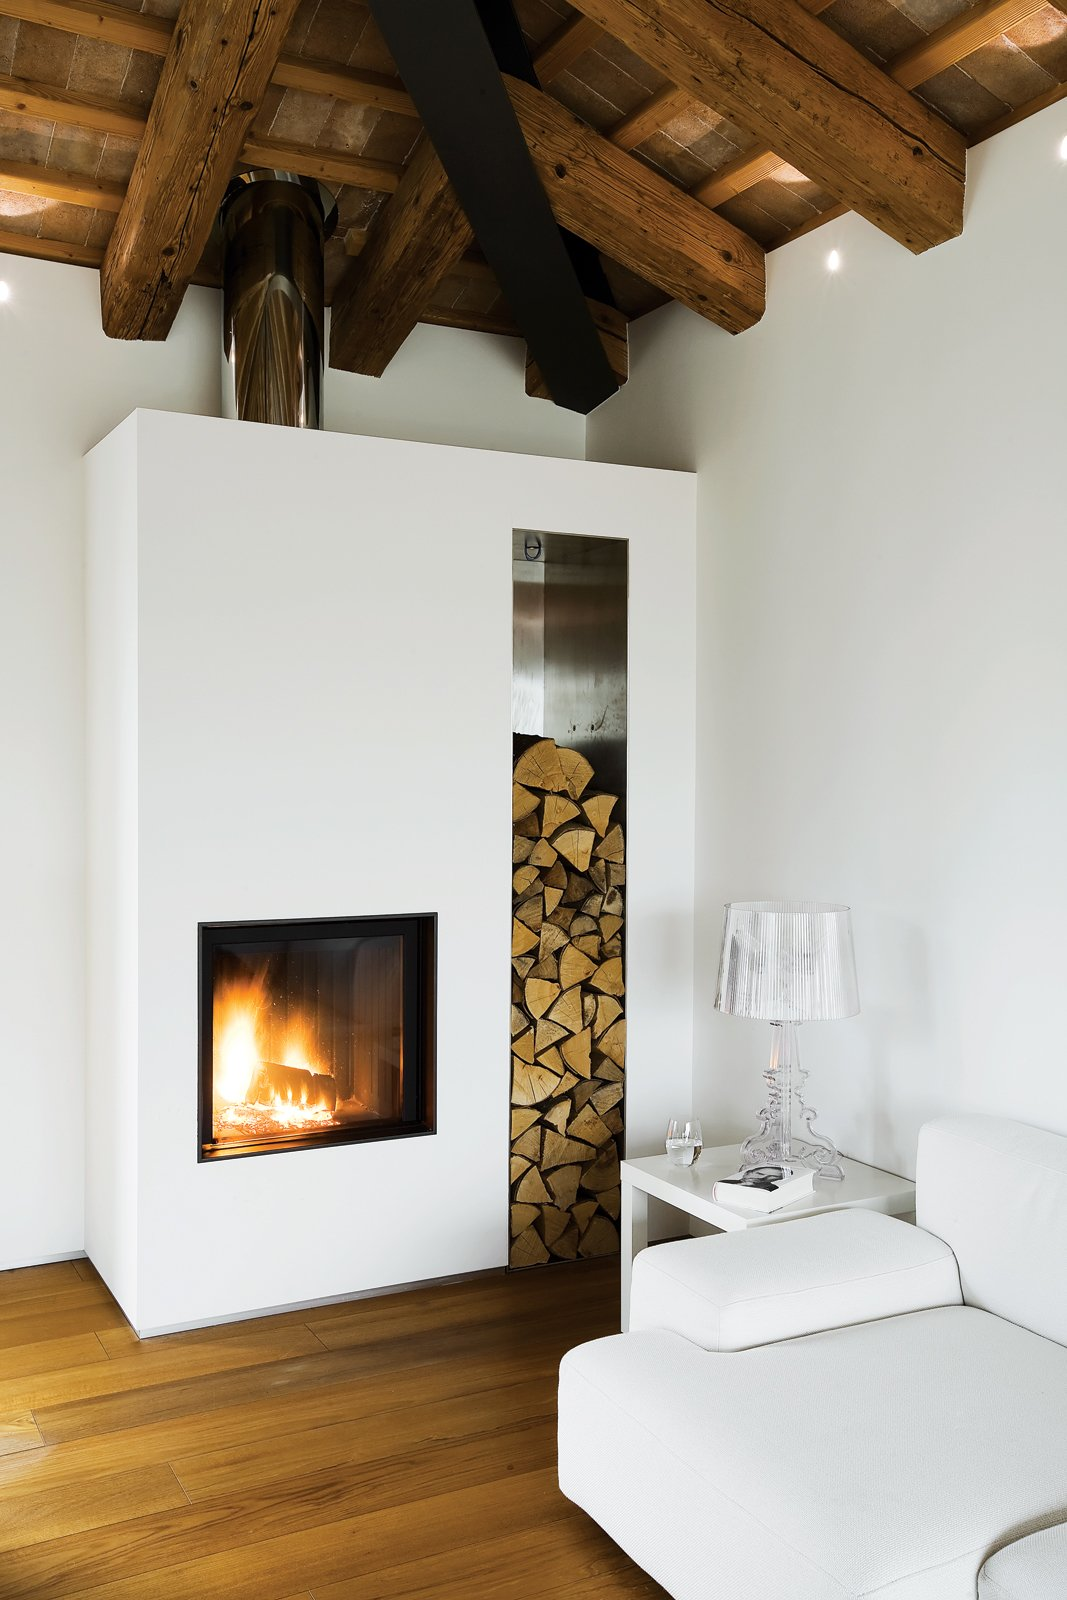 A firewood nice and hearth infuse the interior of a renovated farmhouse in Italy with coziness. Photo by Helenio Barbetta. Tagged: Living Room, Medium Hardwood Floor, End Tables, Sofa, Table Lighting, and Wood Burning Fireplace. 10 Cozy Spaces and 15 Products to Help You Get Ready For Fall - Photo 4 of 10